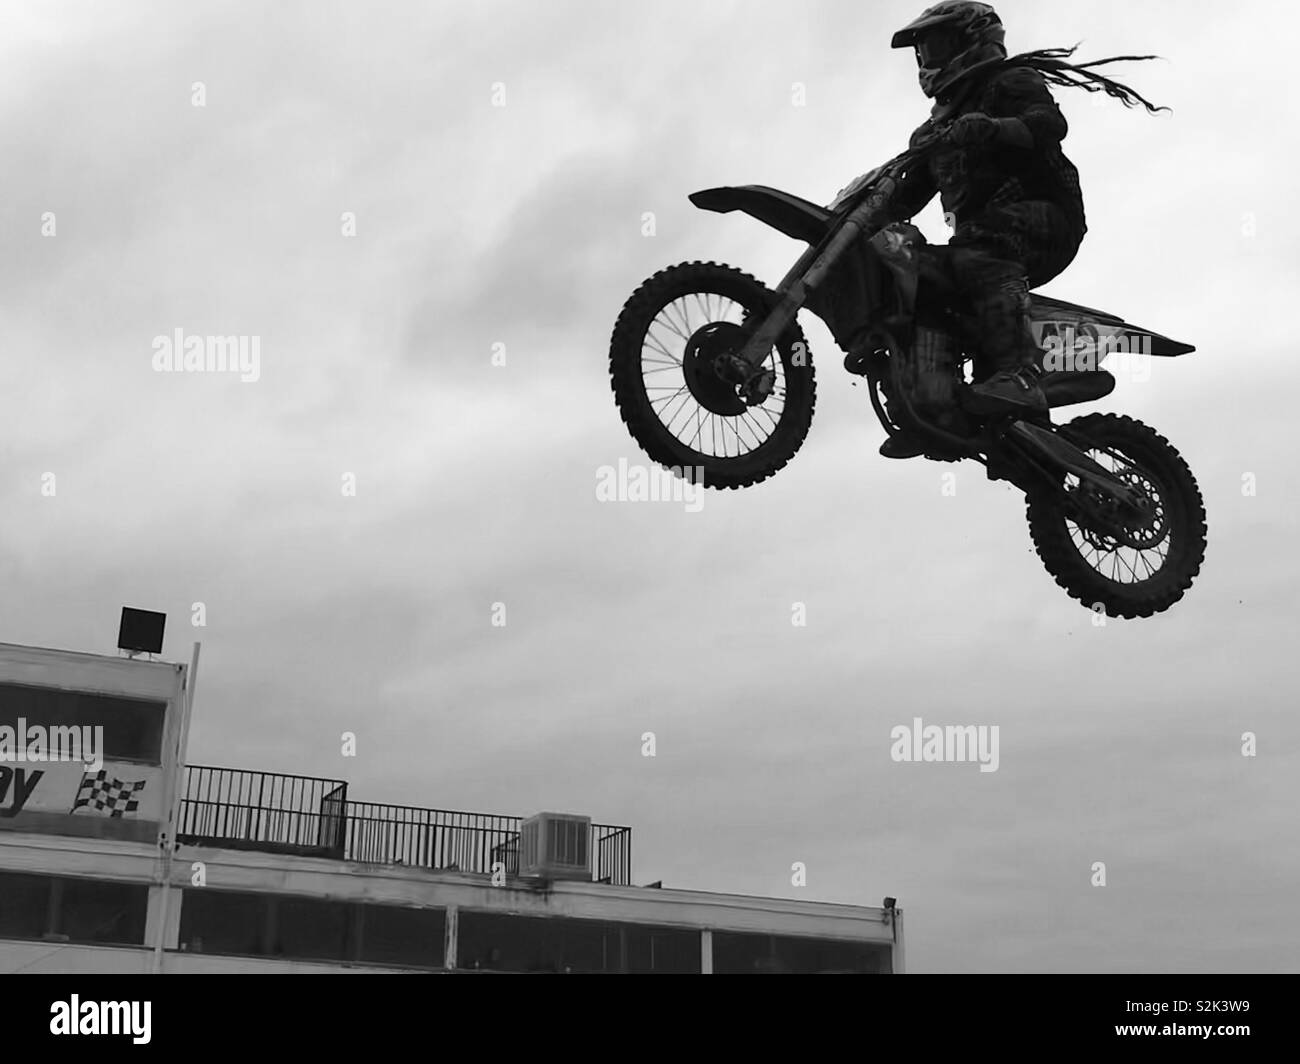 Flying high! Stock Photo